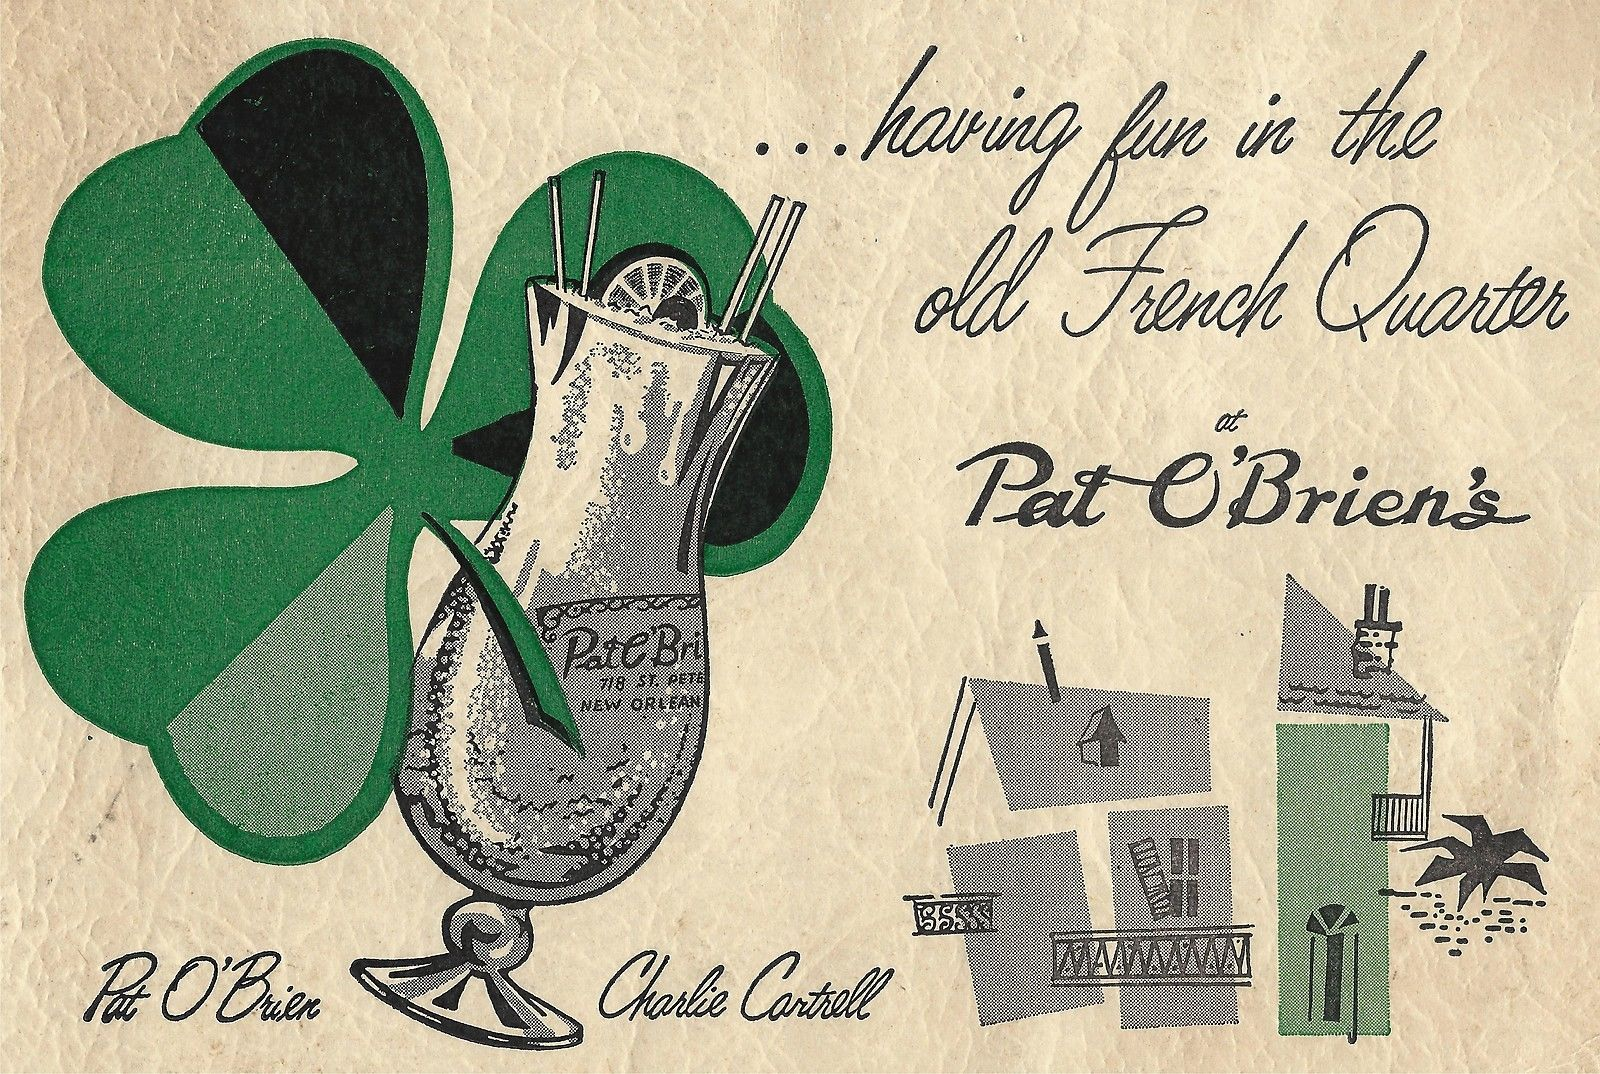 A classic image from Pat O'Brien's – note their signature Hurricane glass!